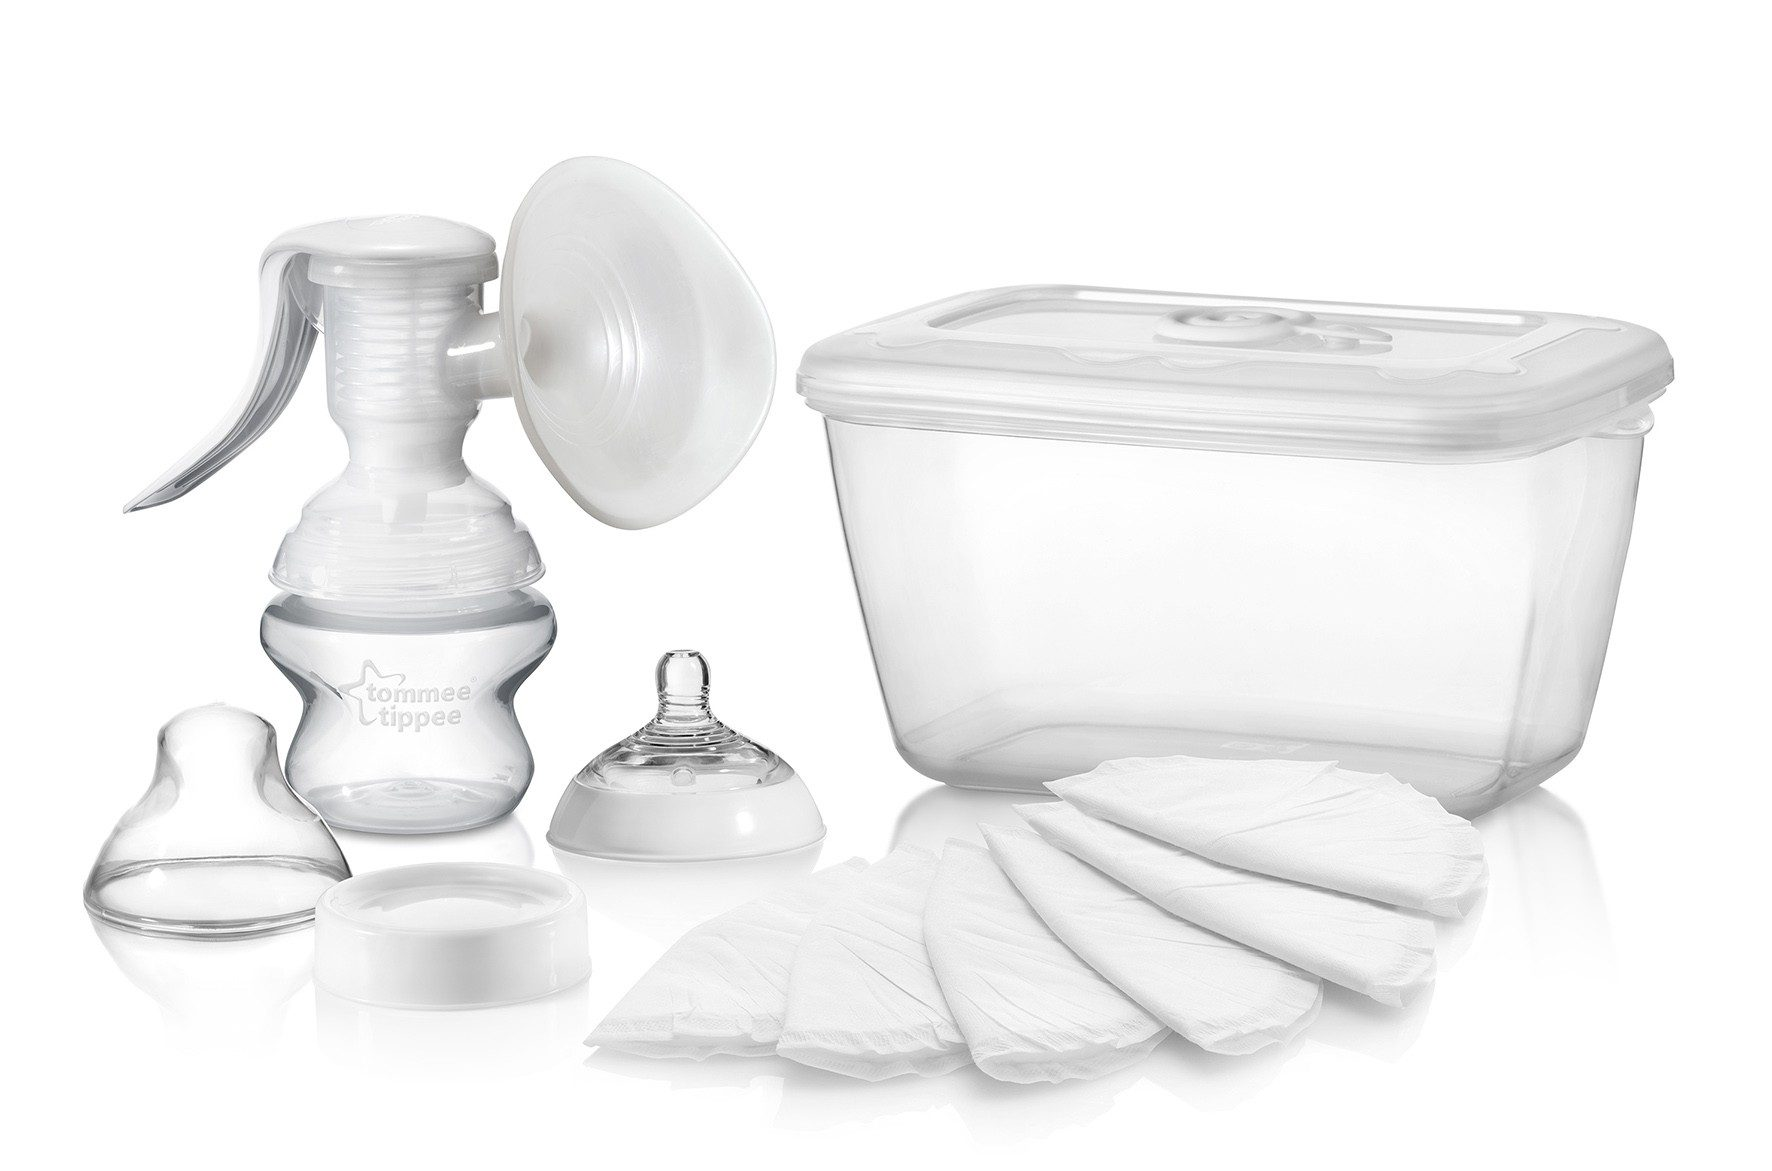 The first years natural transitions breast pump